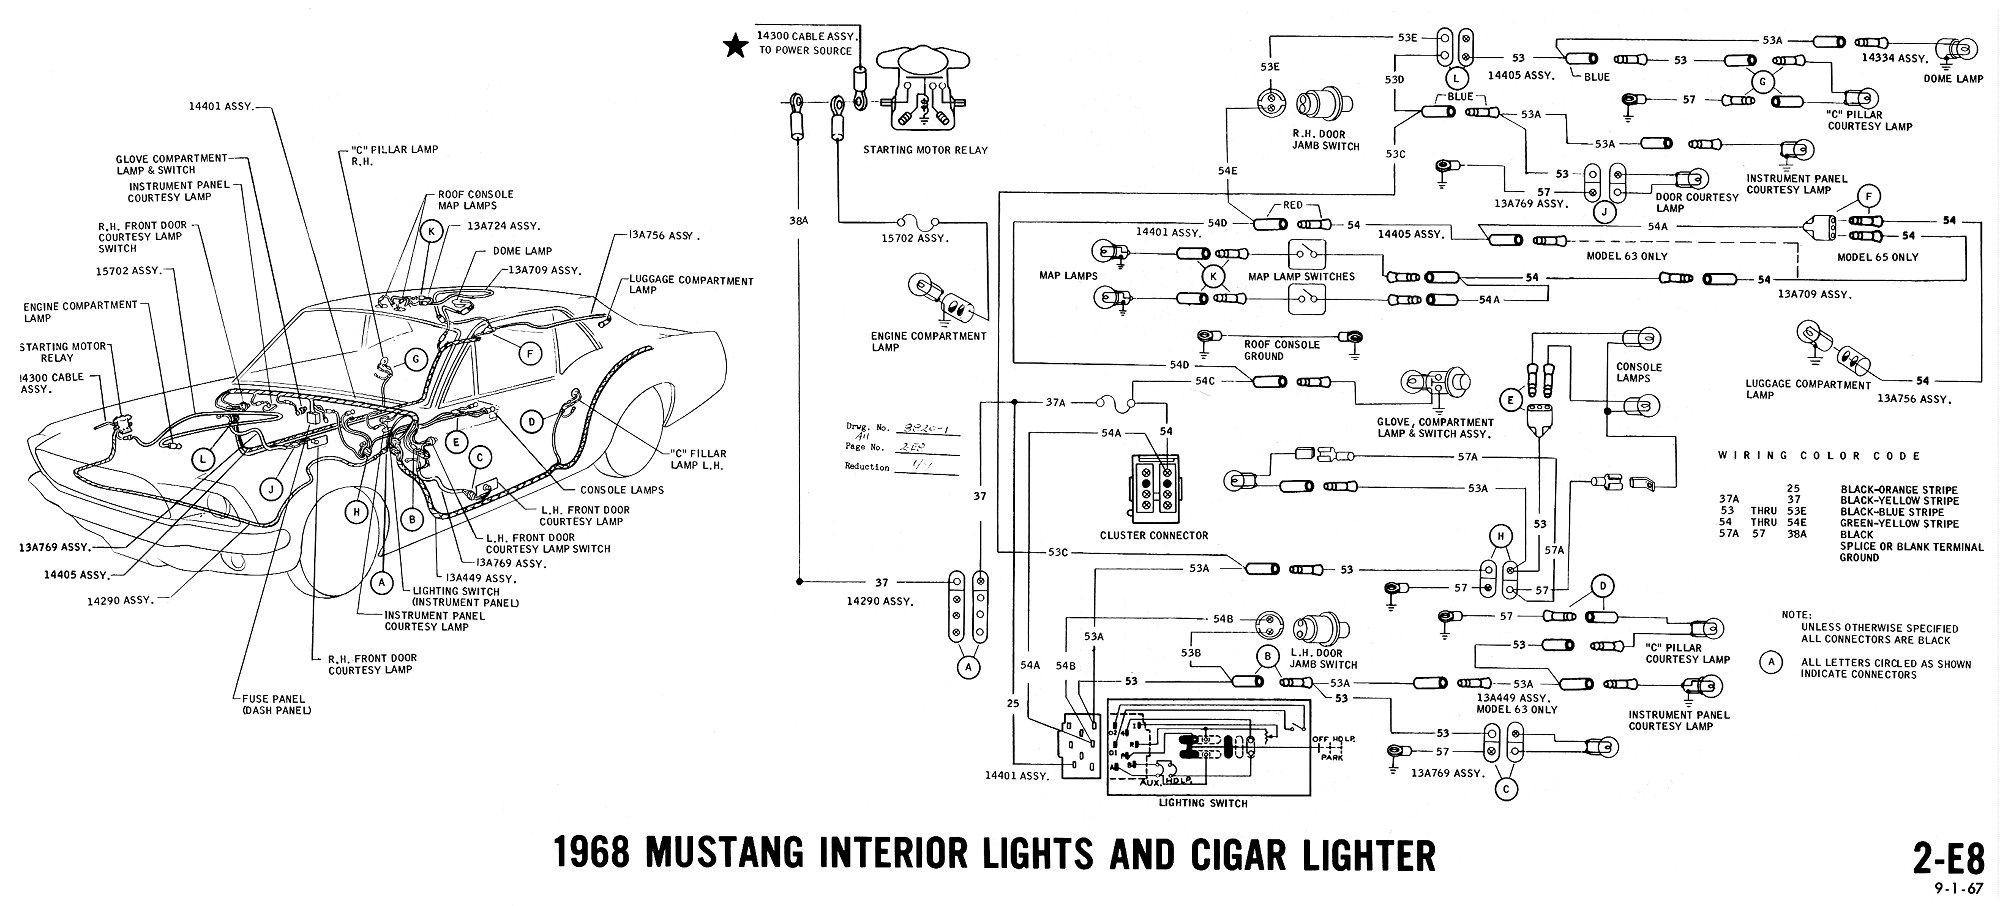 1964 ford fairlane wiring schematic